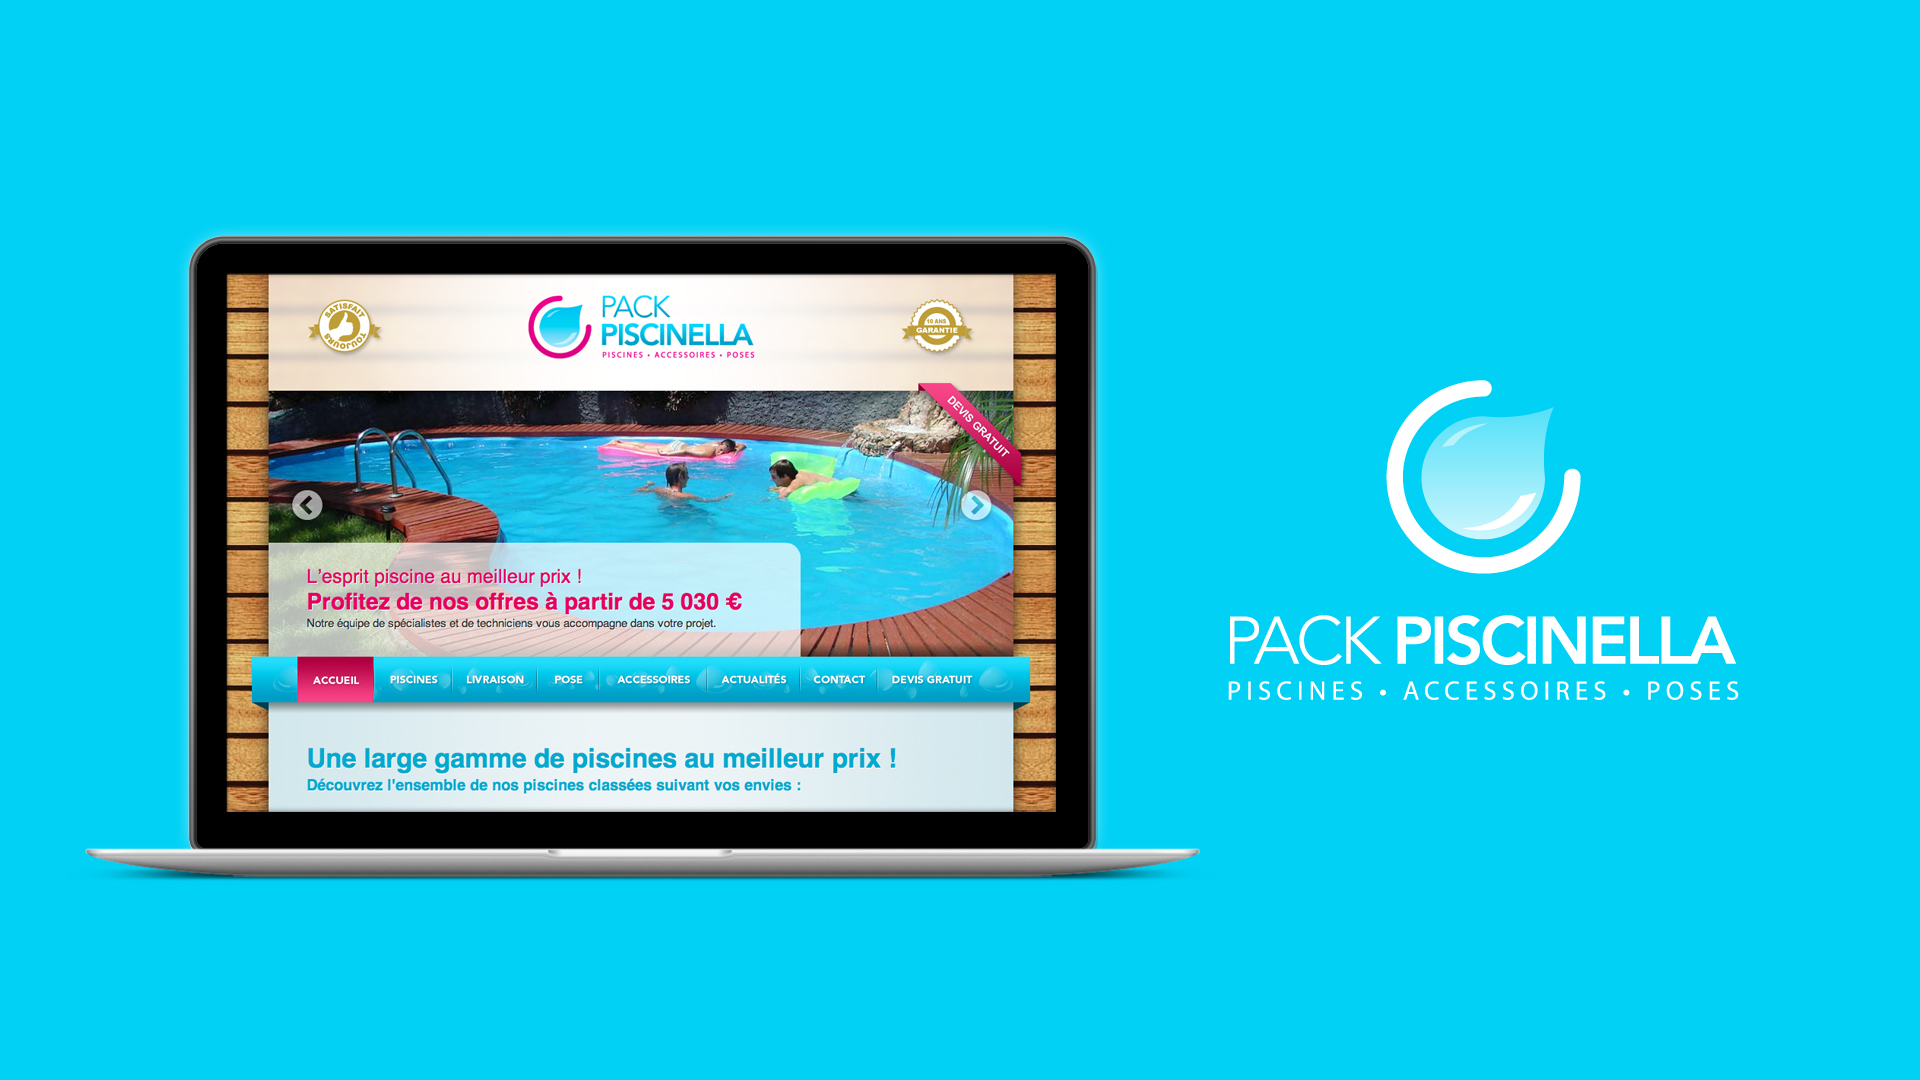 pack-piscinella-creation-logo-site-internet-communication-caconcept-alexis-cretin-graphiste-bis